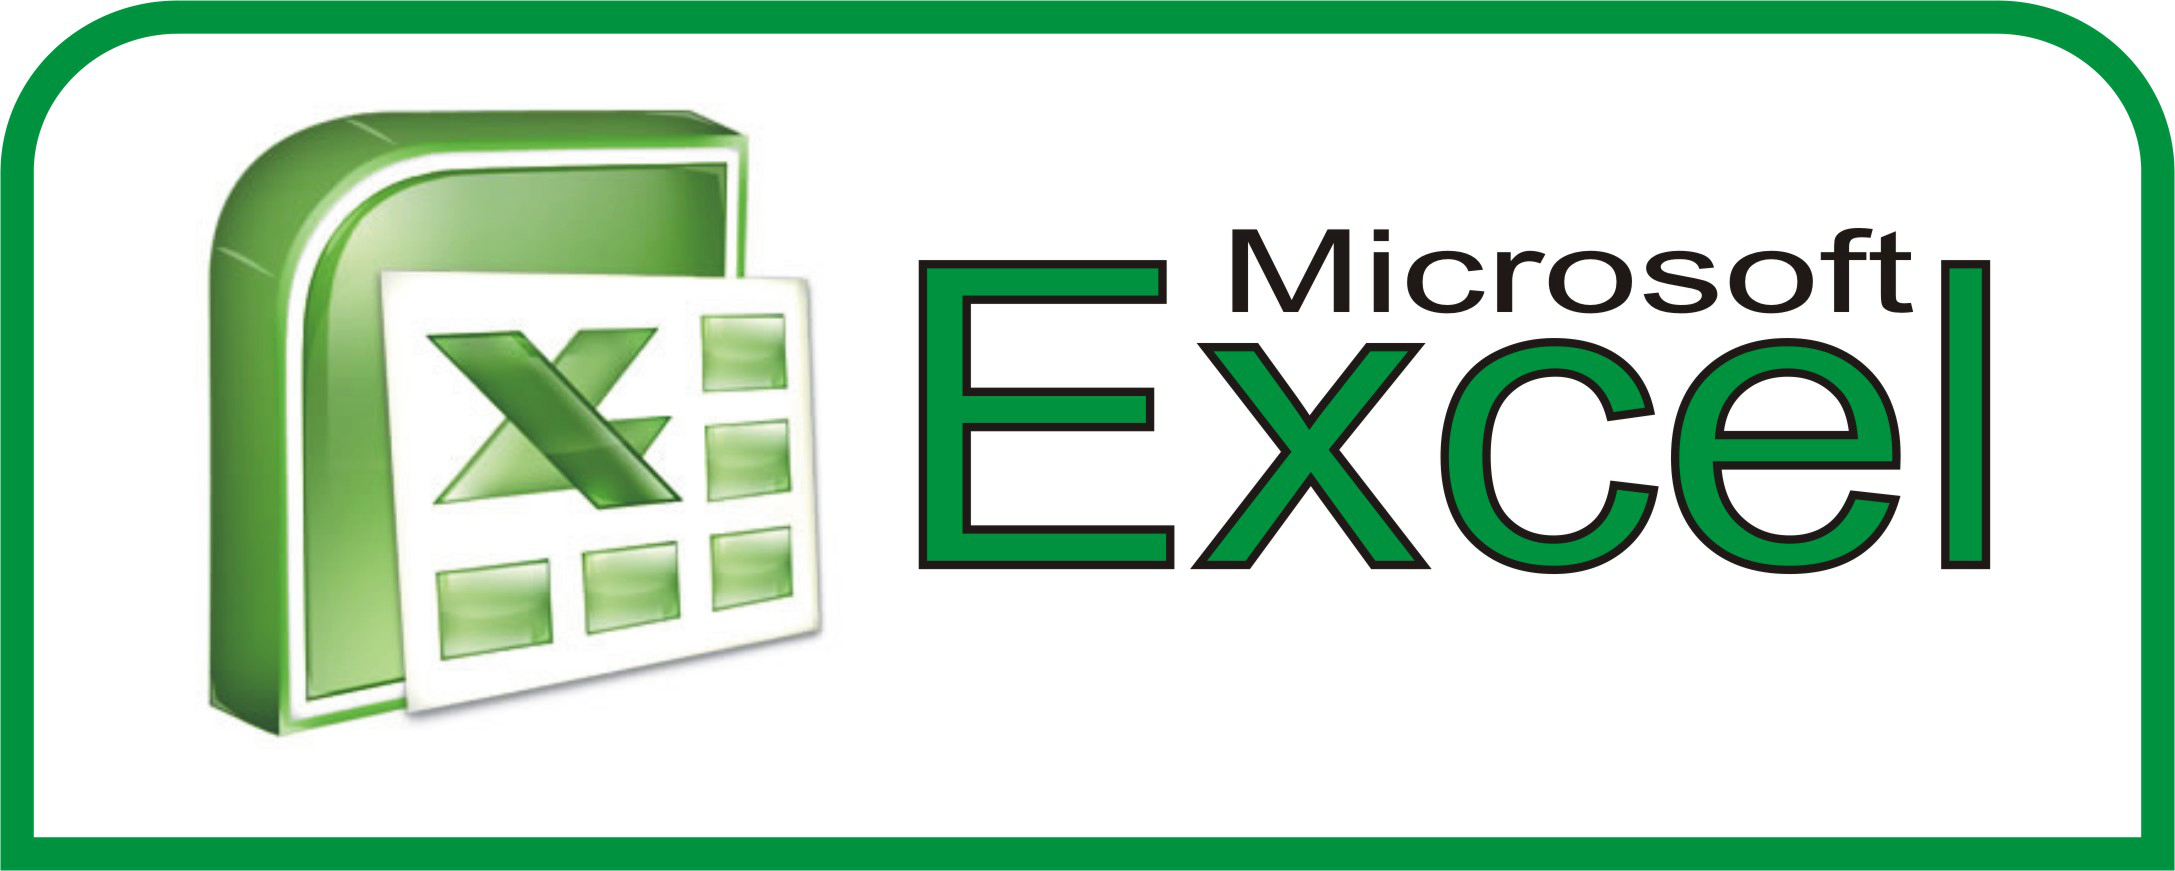 Ediblewildsus  Remarkable  Excel Shortcuts You Probably Didnt Know About  Techdissected With Likable Visual Basic In Excel Besides Excel Basketball Camp Furthermore Free Excel Gantt Chart Template With Endearing How To Convert A Word Document To Excel Also Excel Vba Activesheet In Addition Convert Number To Text Excel And Excel Codes As Well As Ucf Excel Additionally Does Not Equal Sign In Excel From Techdissectedcom With Ediblewildsus  Likable  Excel Shortcuts You Probably Didnt Know About  Techdissected With Endearing Visual Basic In Excel Besides Excel Basketball Camp Furthermore Free Excel Gantt Chart Template And Remarkable How To Convert A Word Document To Excel Also Excel Vba Activesheet In Addition Convert Number To Text Excel From Techdissectedcom